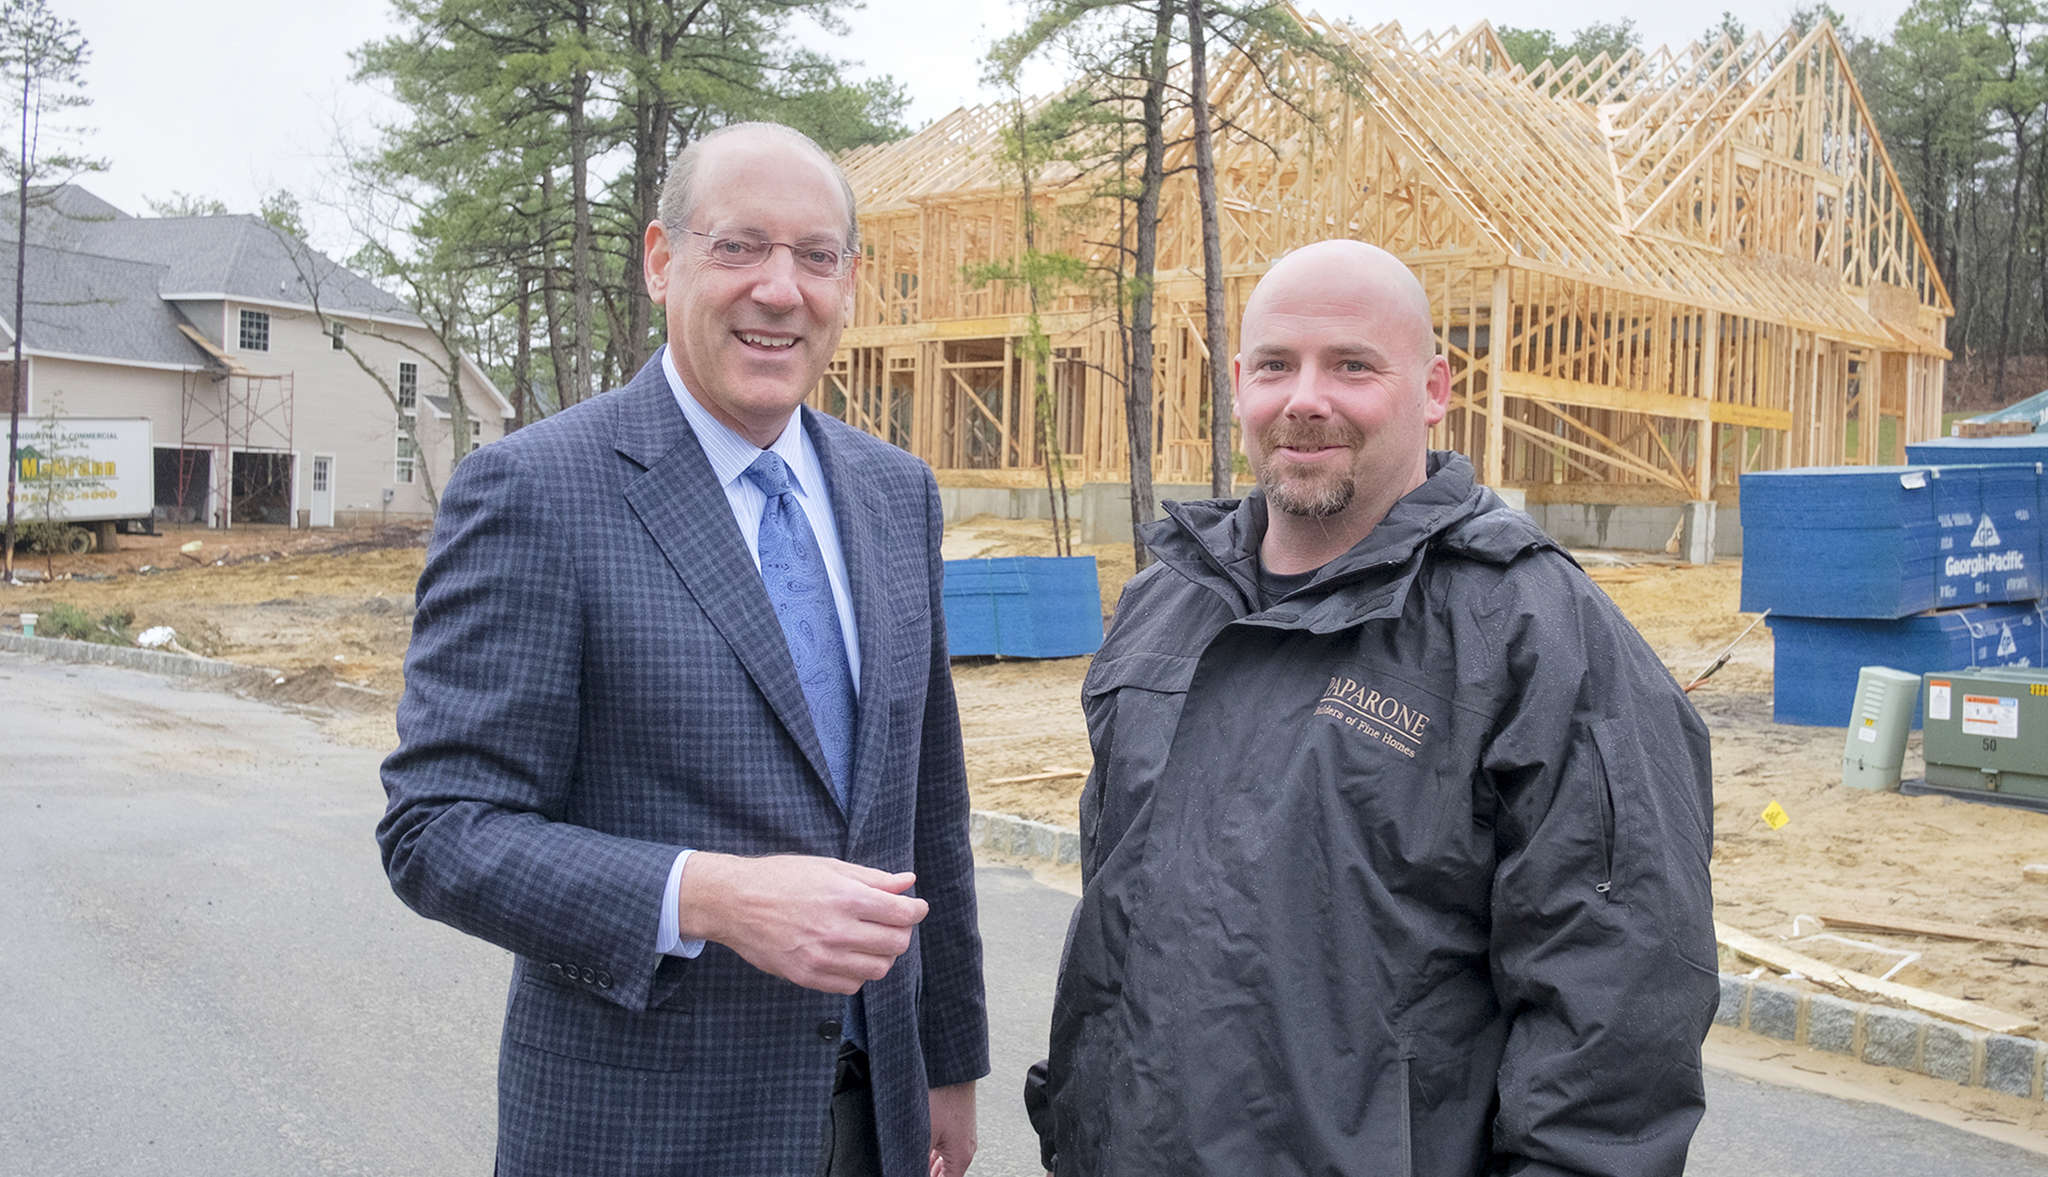 Developer Bruce Paparone (left) and construction manager Michael Bocchino at a Voorhees development.